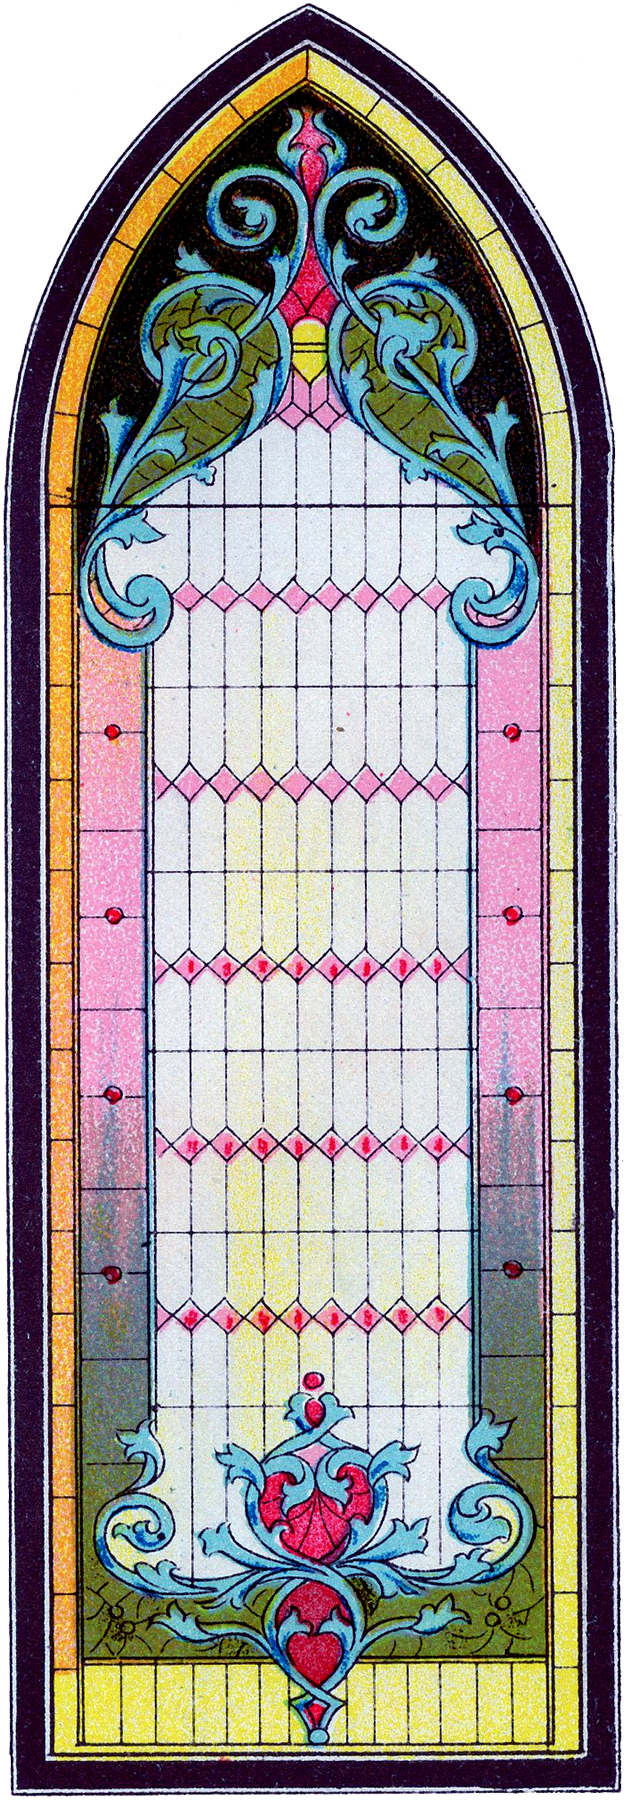 Vintage Stained Glass Gothic Window Image The Graphics Fairy